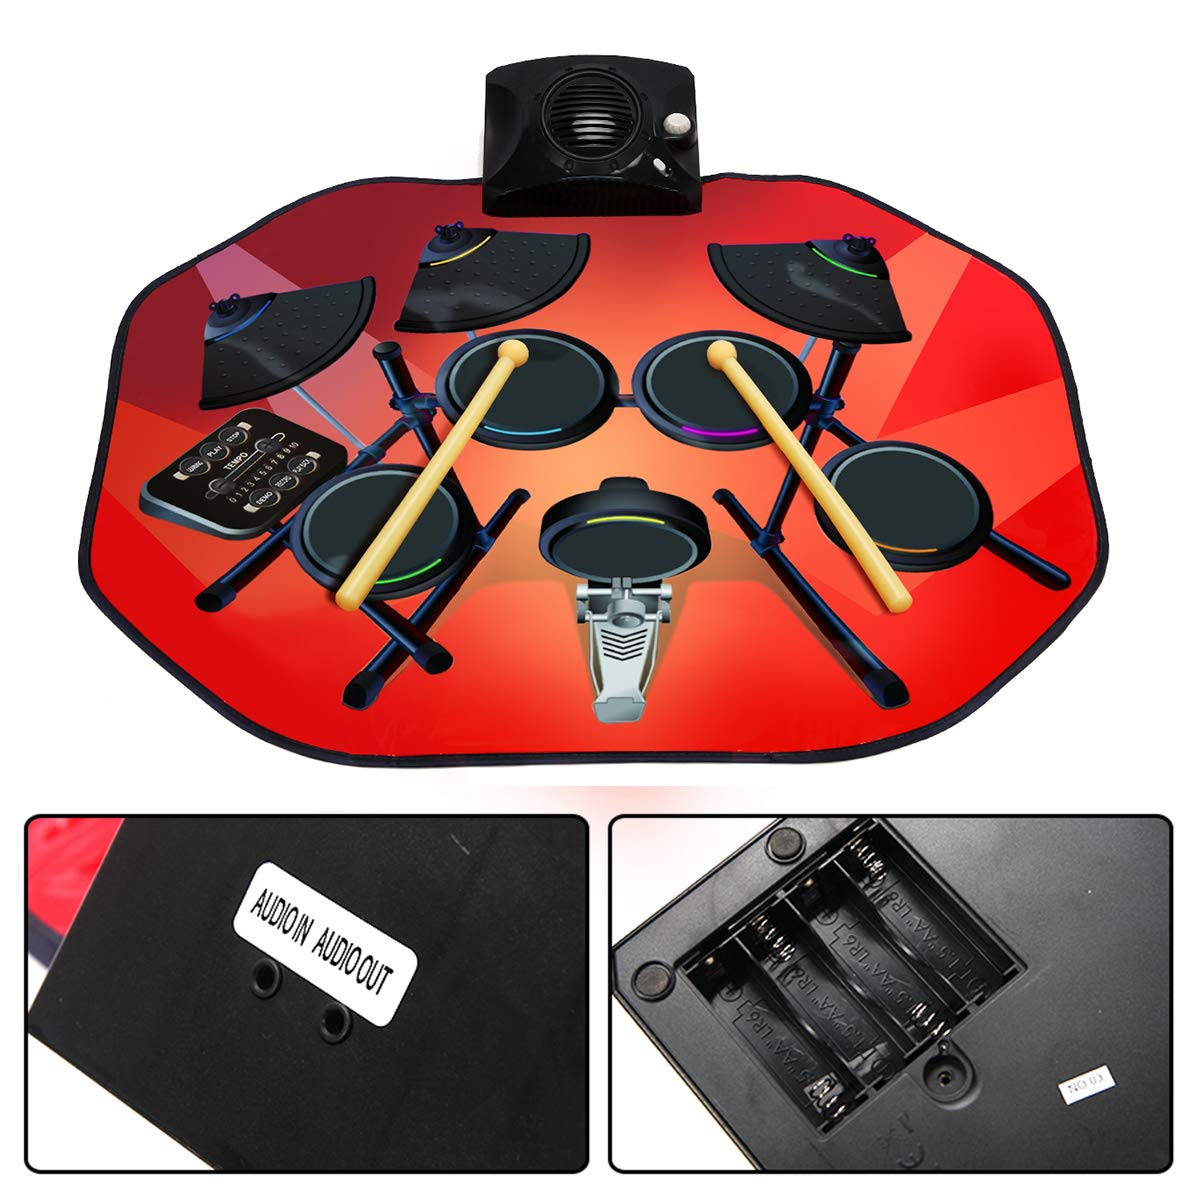 Costzon Electronic Drum Mat, 8 Keys Glowing Music Mat with LED Lights,MP3 Cable, Drumsticks, Support Play - Study-Record - Playback - Demo 5 Modes, Volume Control by Costzon (Image #5)